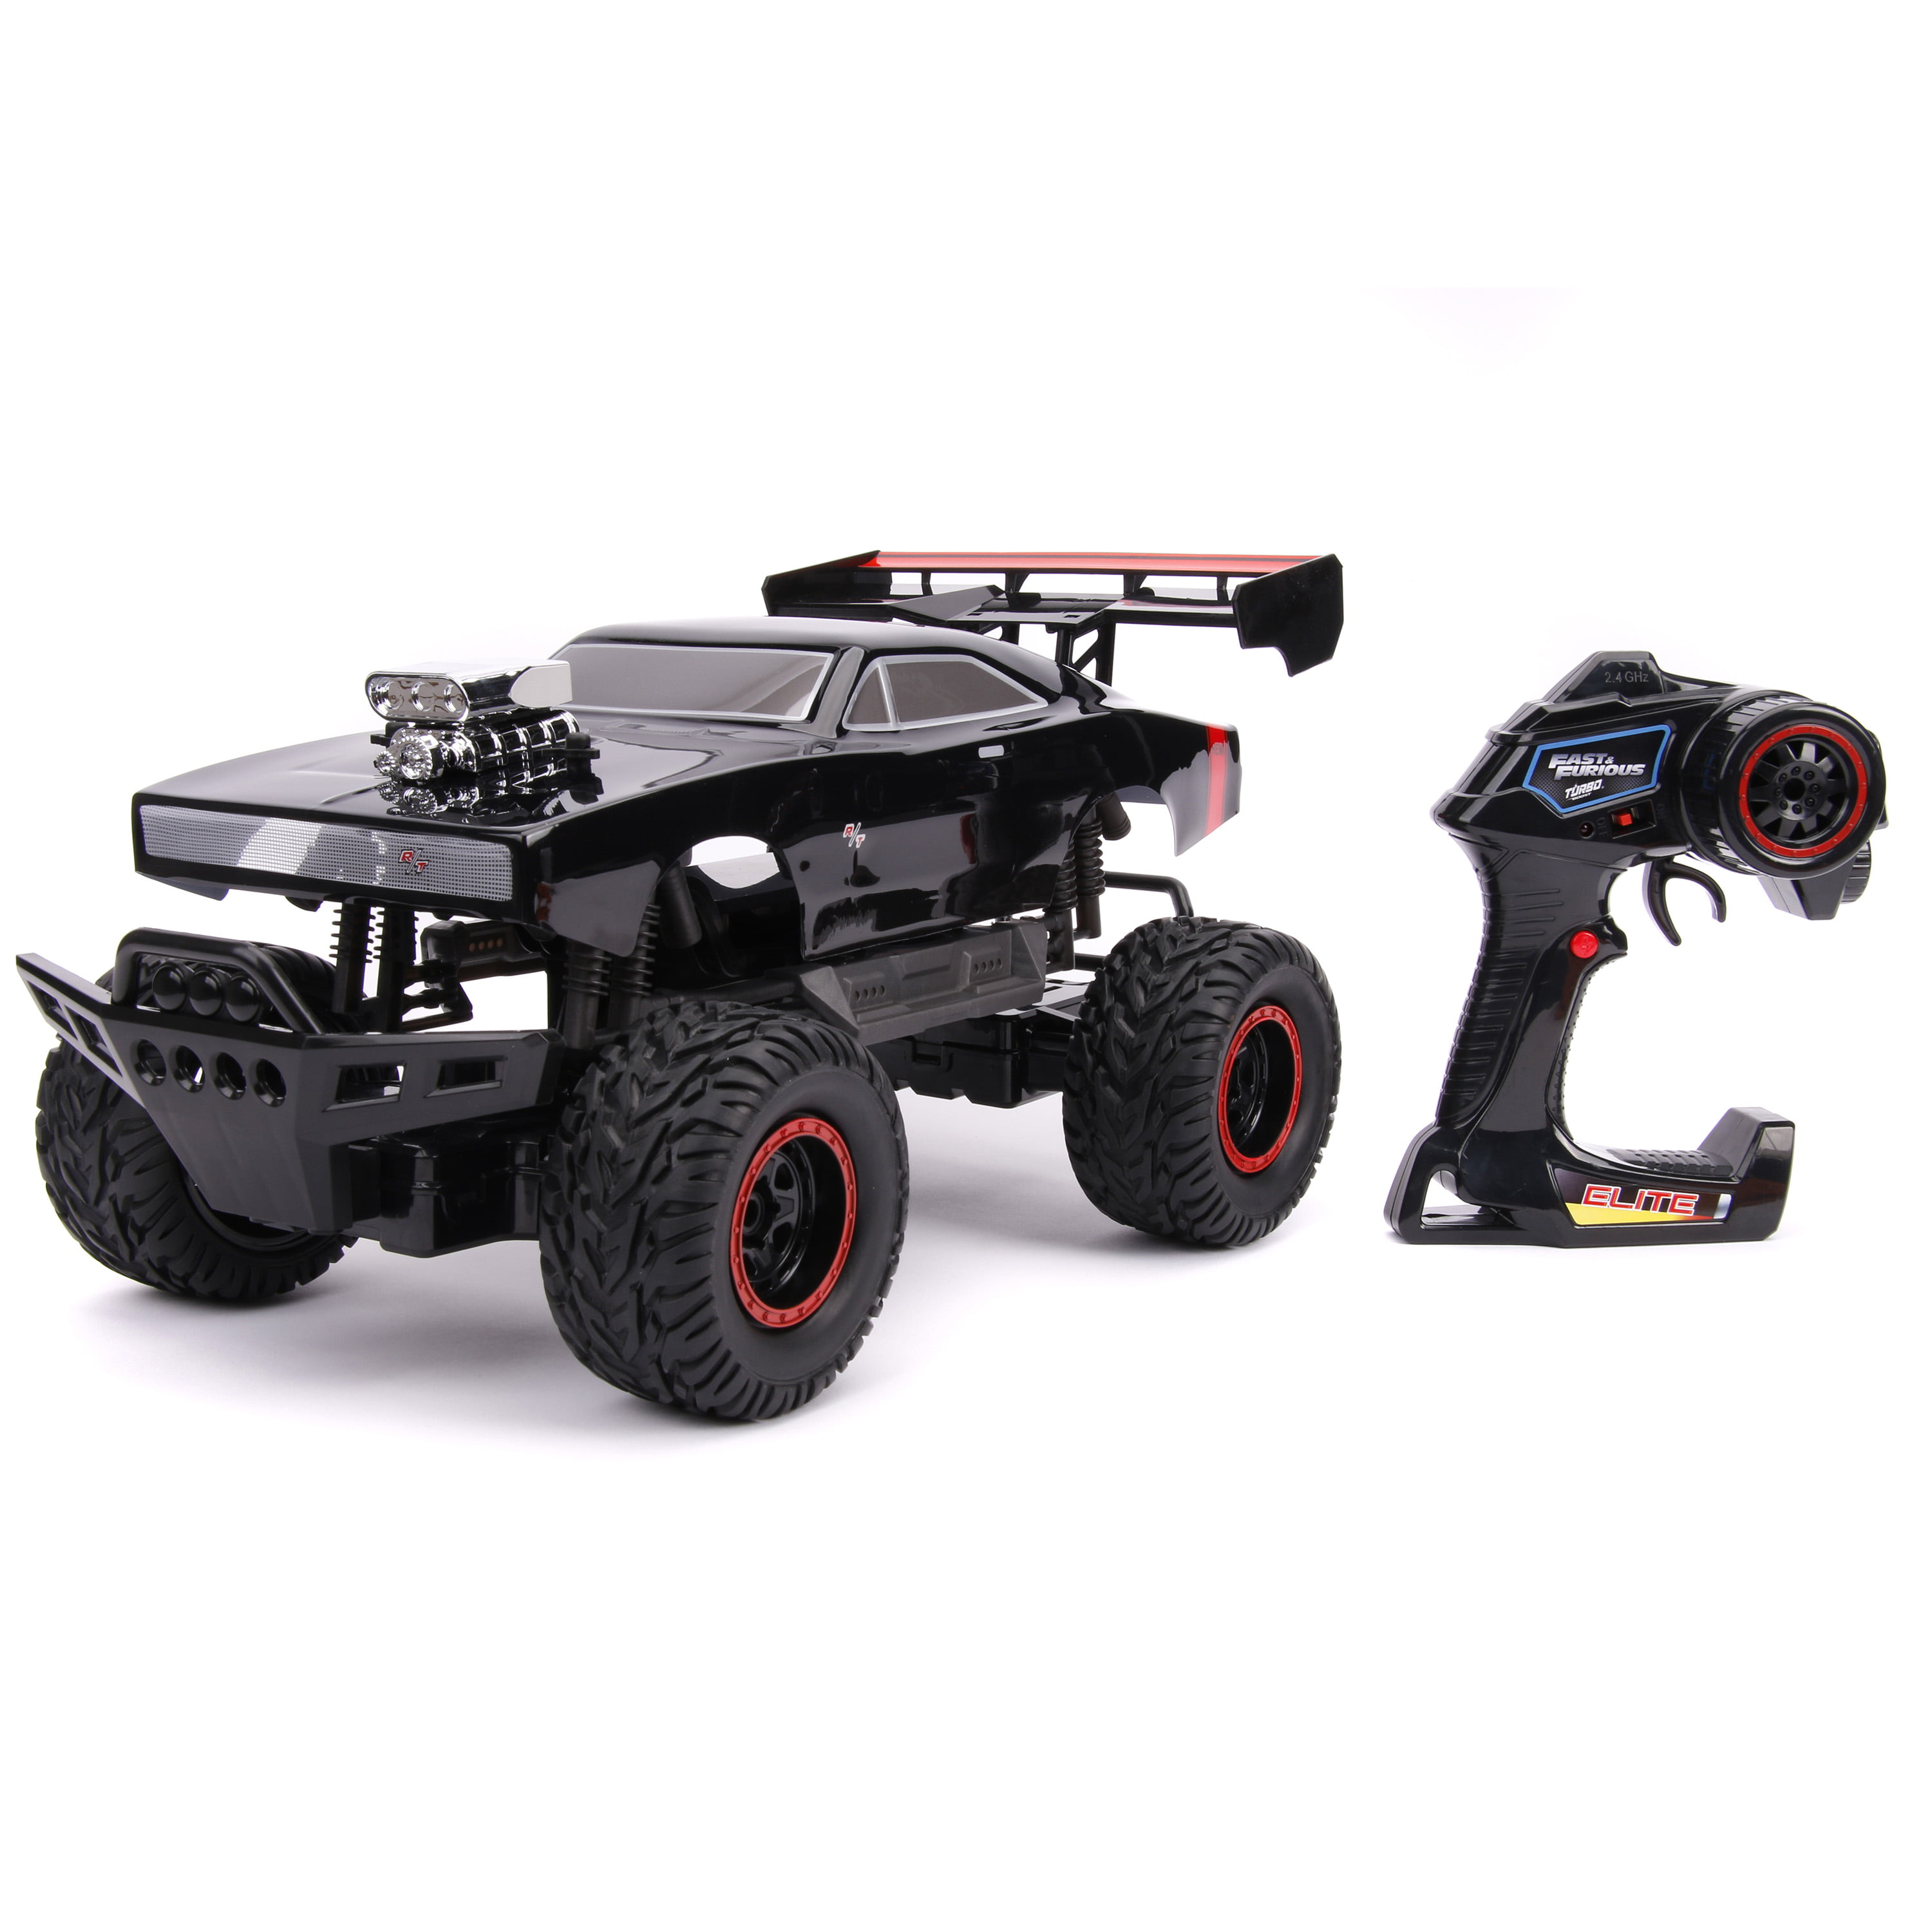 Jada Toys Fast & Furious Elite 4x4 RC 1970 Dodge Charger R/T Remote Control Vehicle 1:12 Scale Glossy Black